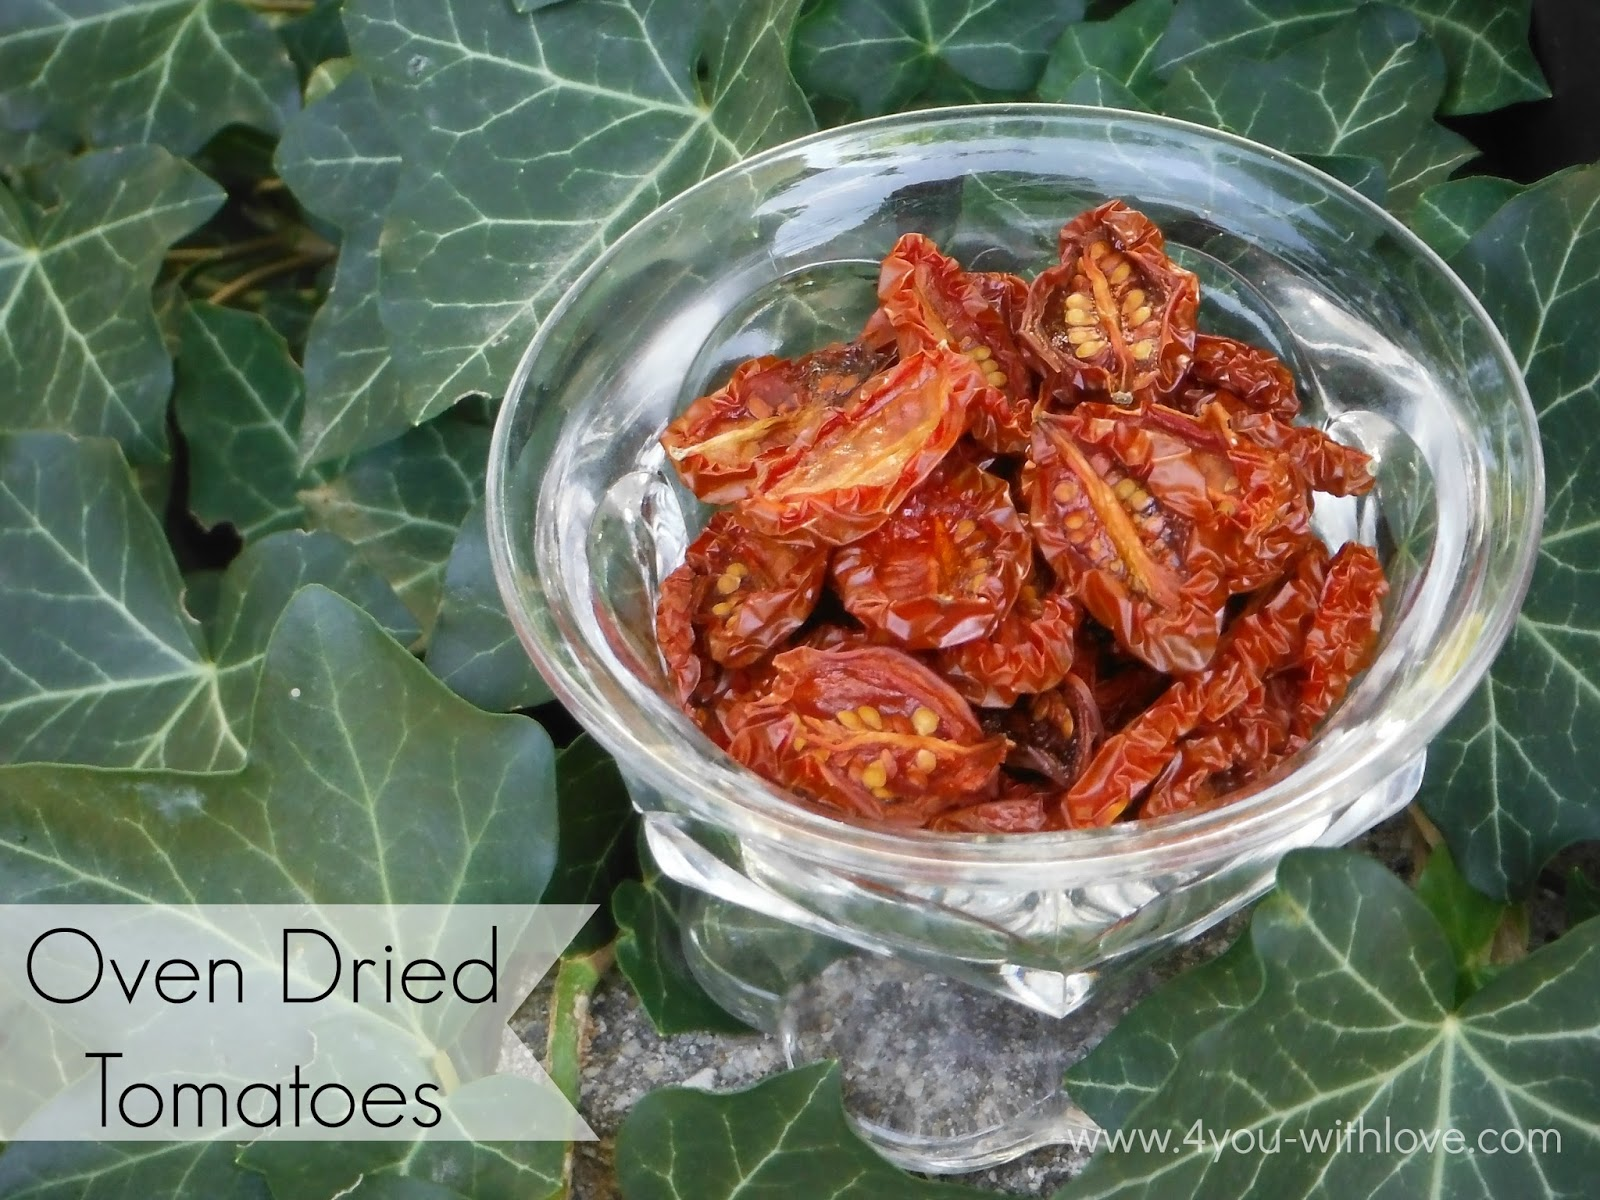 Party Thyme, Preserving the Summer - Oven Dried Tomatoes ...